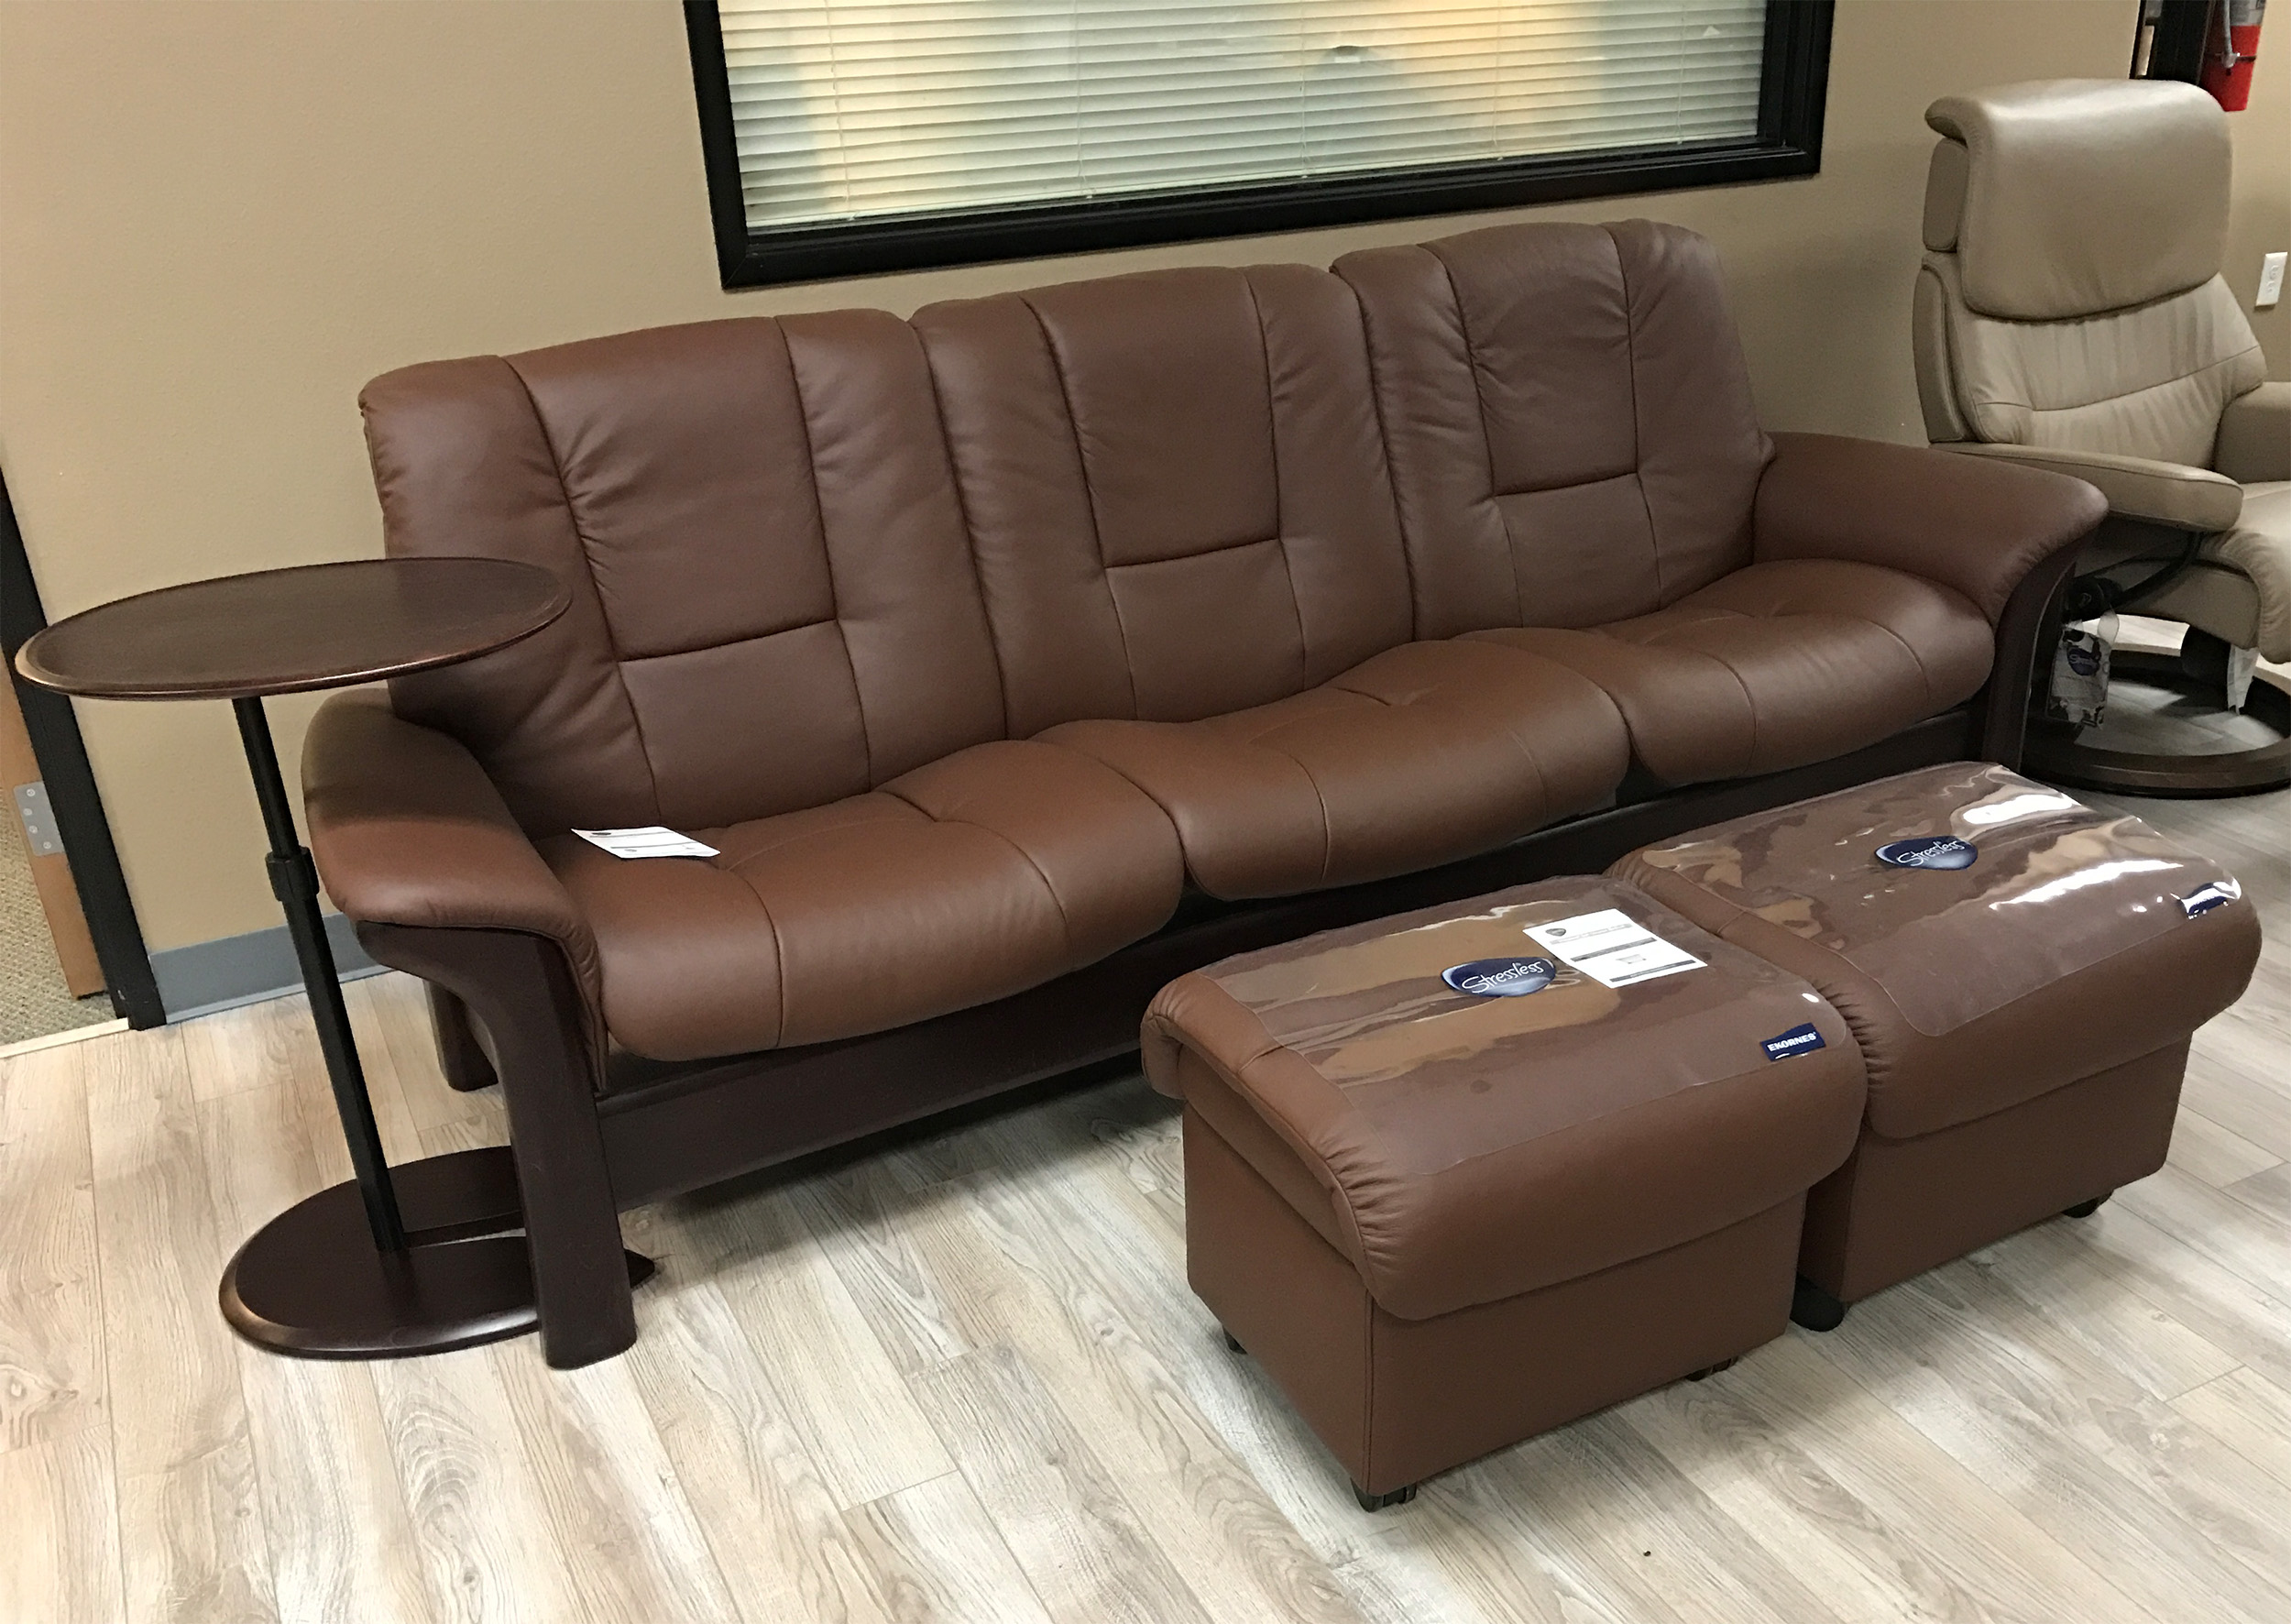 ergonomic chair and ottoman modern brown leather desk ekornes stressless medium soft ottoman, large ottomans tables - double ...